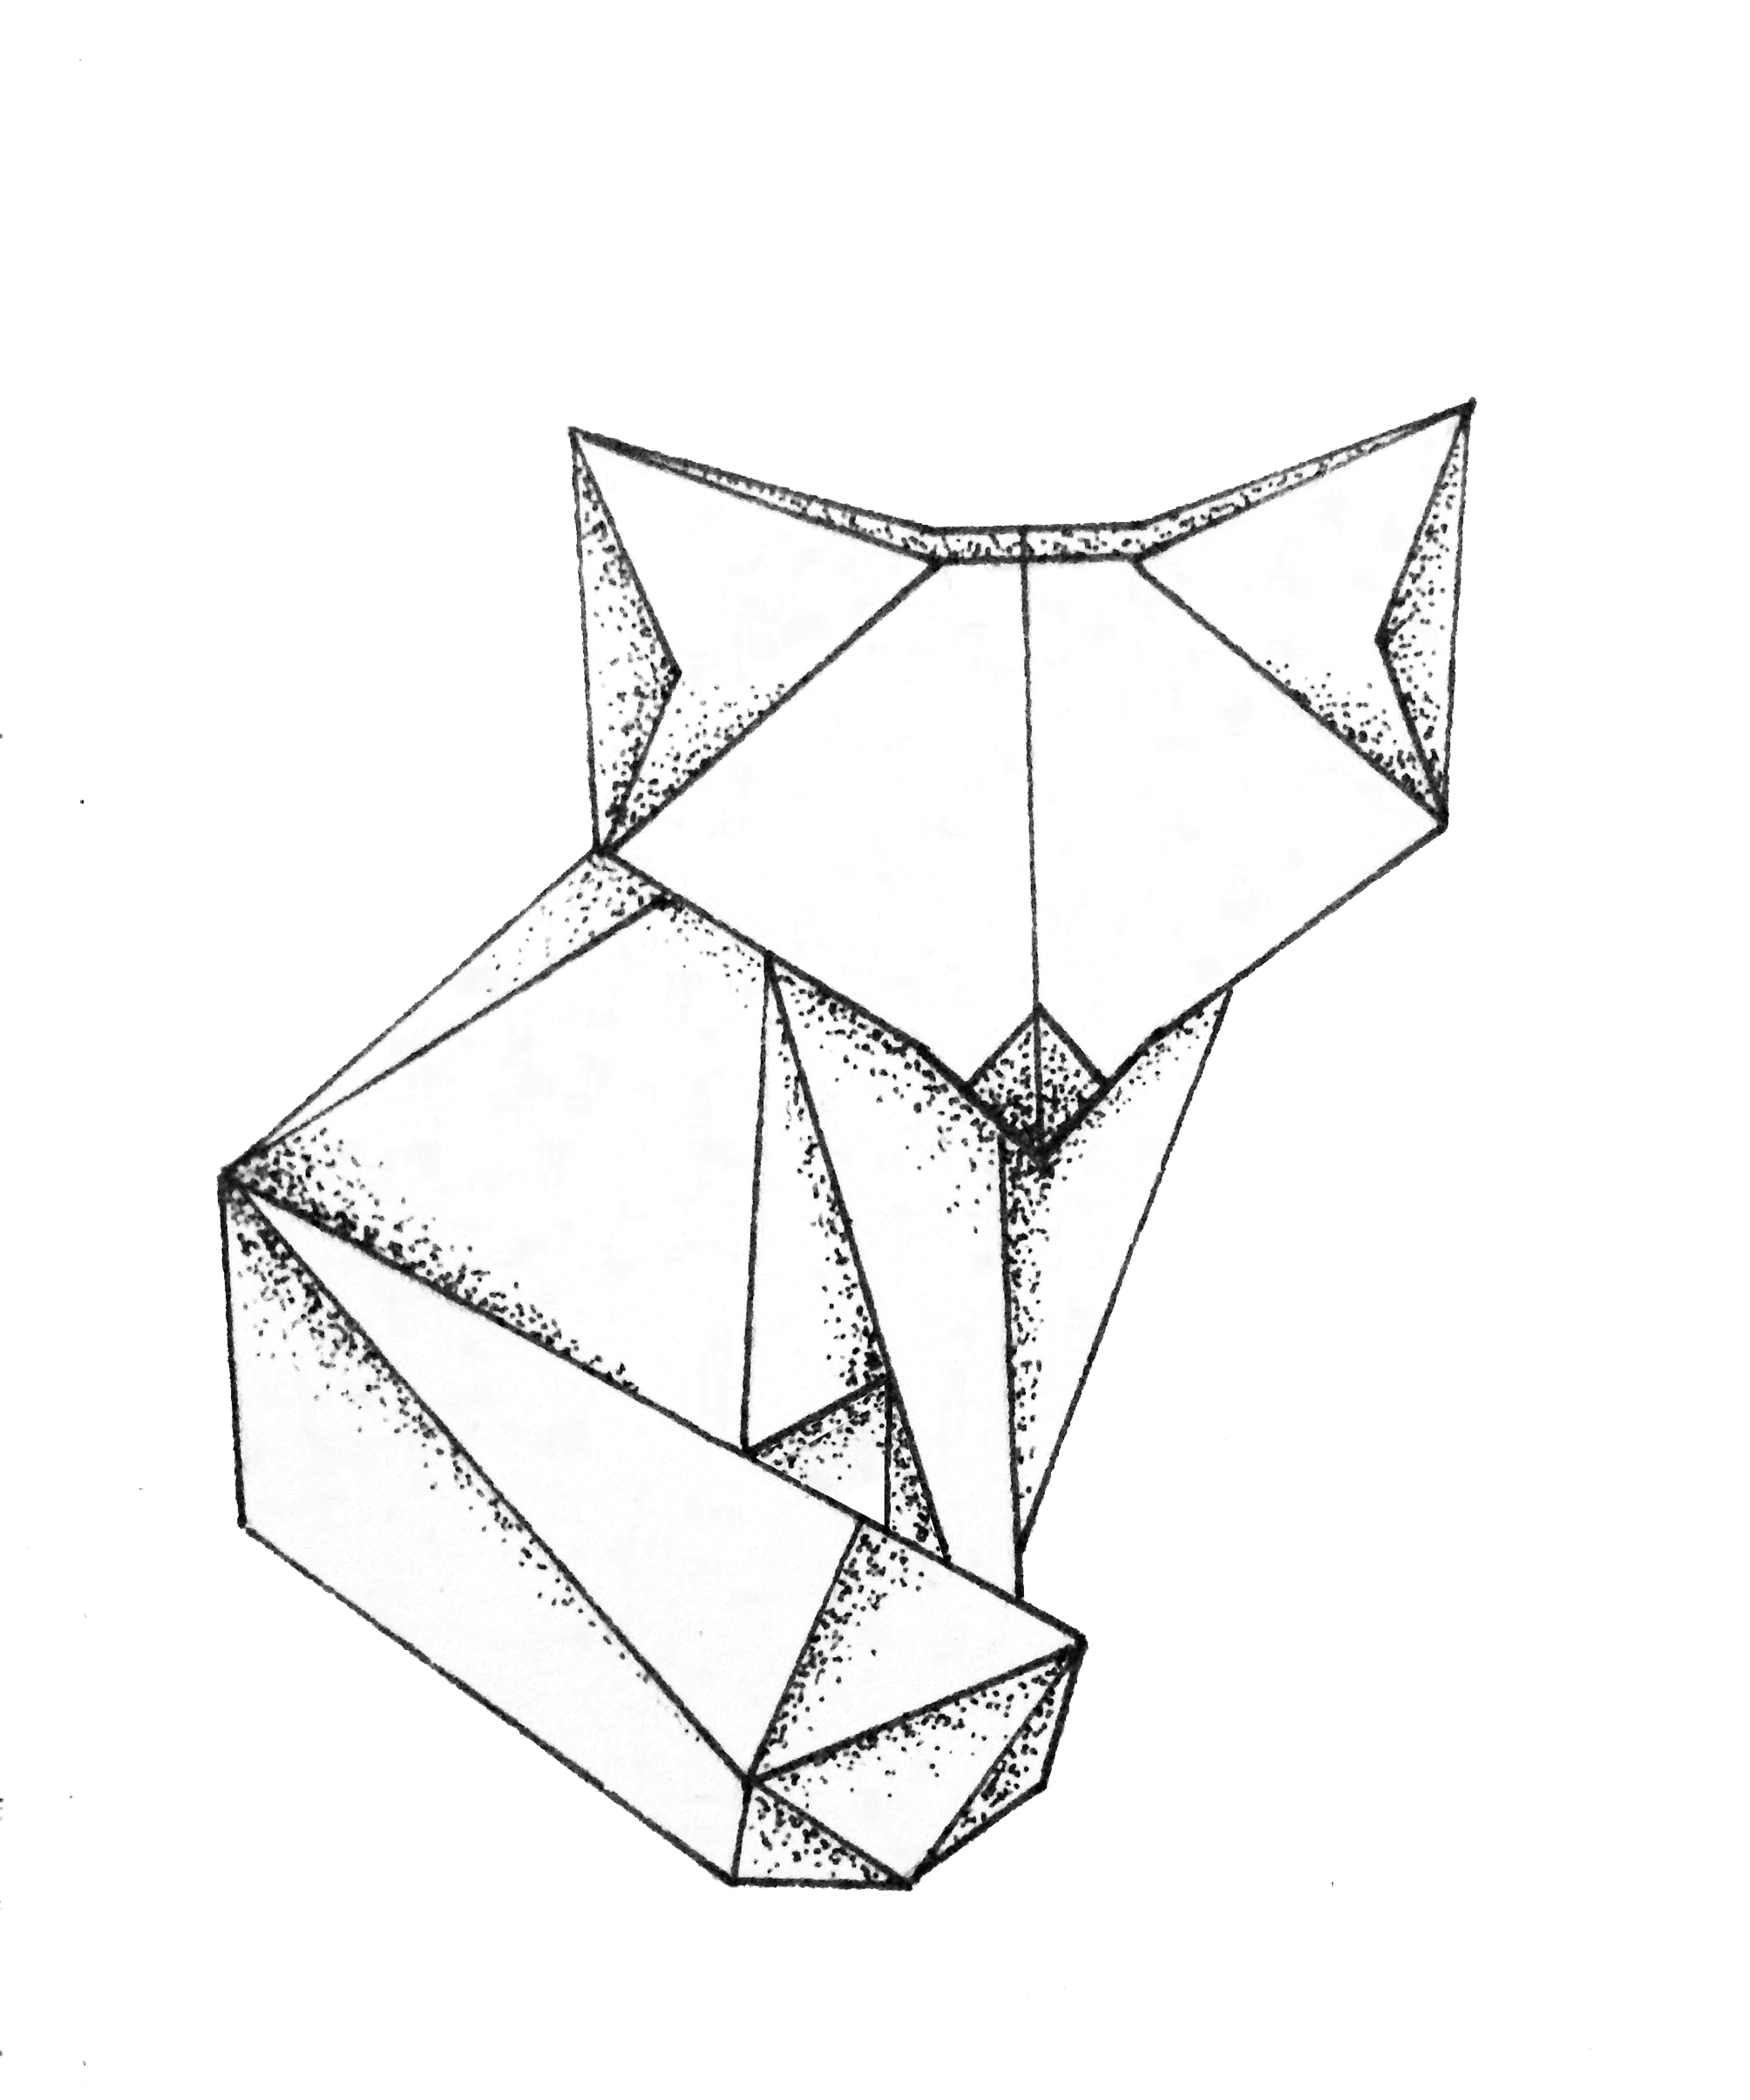 A Simple Representation Of An Origami Fox With Dotwork Naive And Innocent Drawing Ink Pen Illustration Geometric